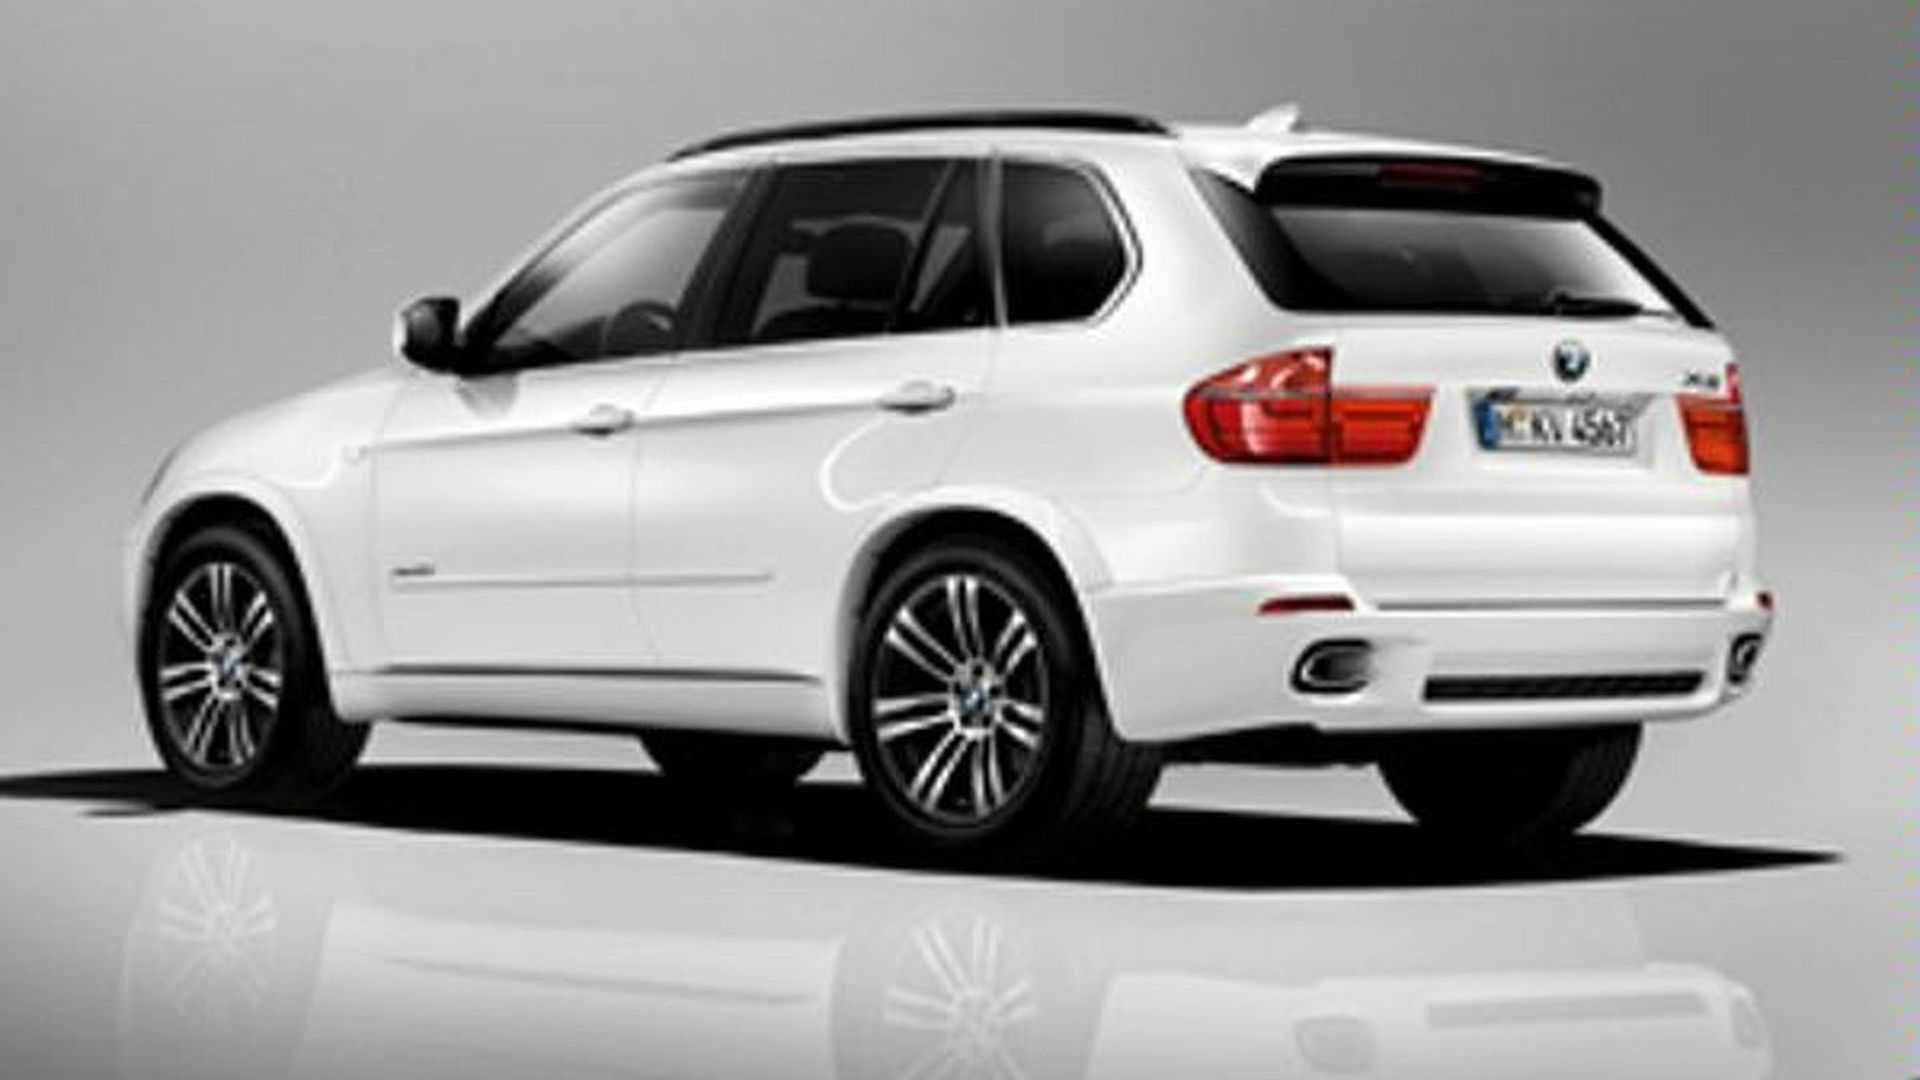 BMW X Facelift With M Sport Package First Photo Surfaces - 2011 bmw x5 sport package